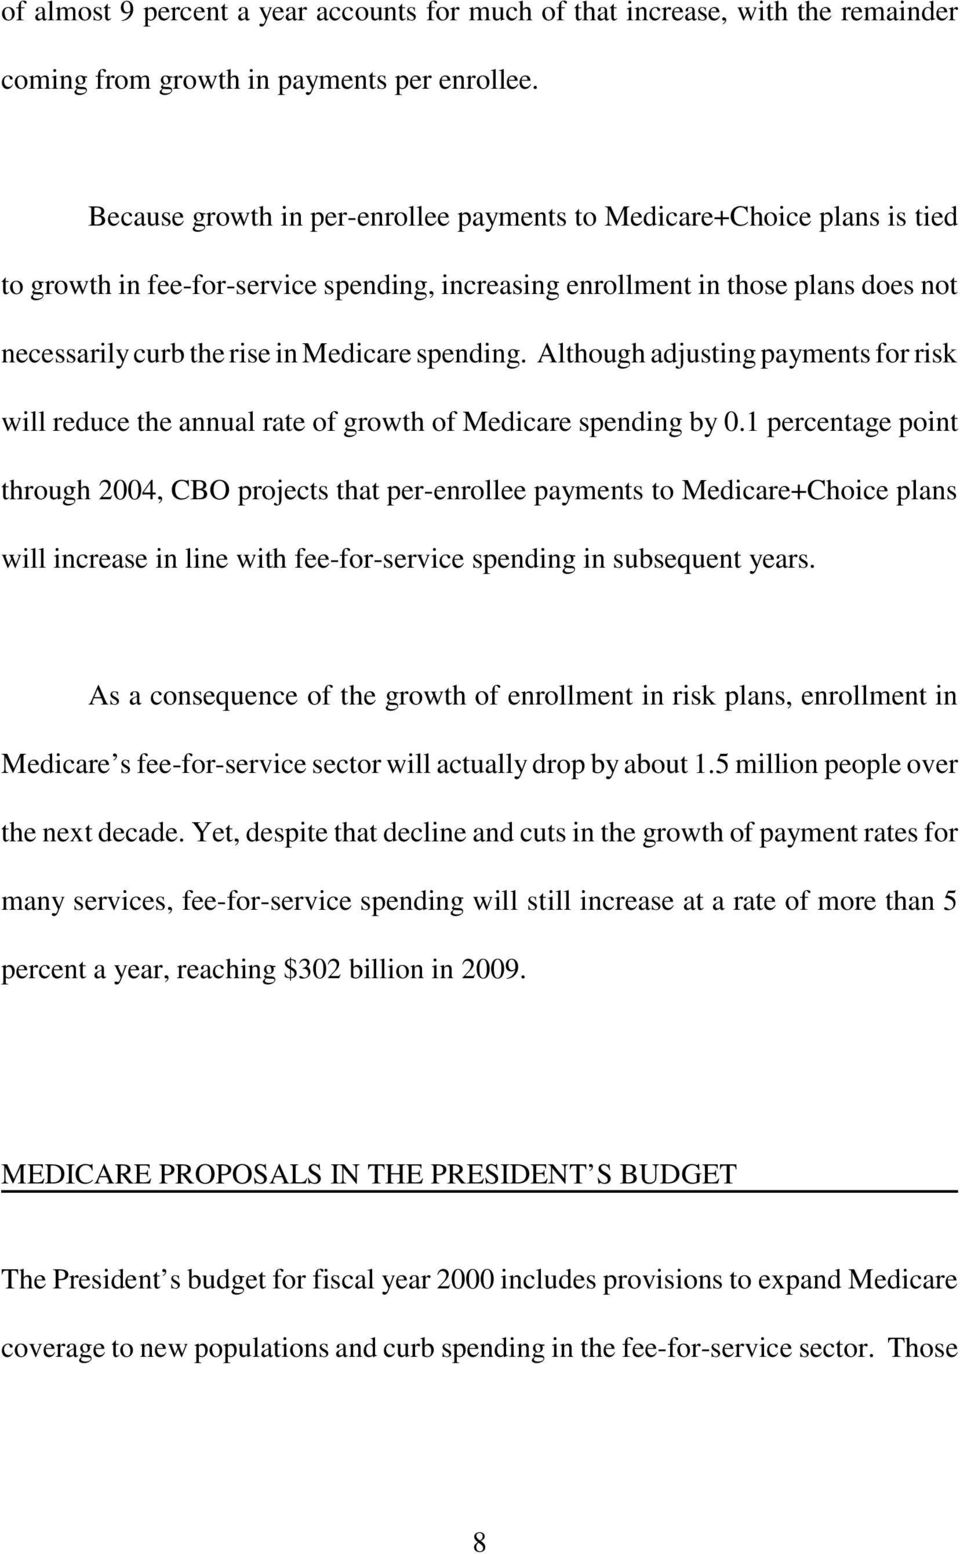 spending. Although adjusting payments for risk will reduce the annual rate of growth of Medicare spending by 0.